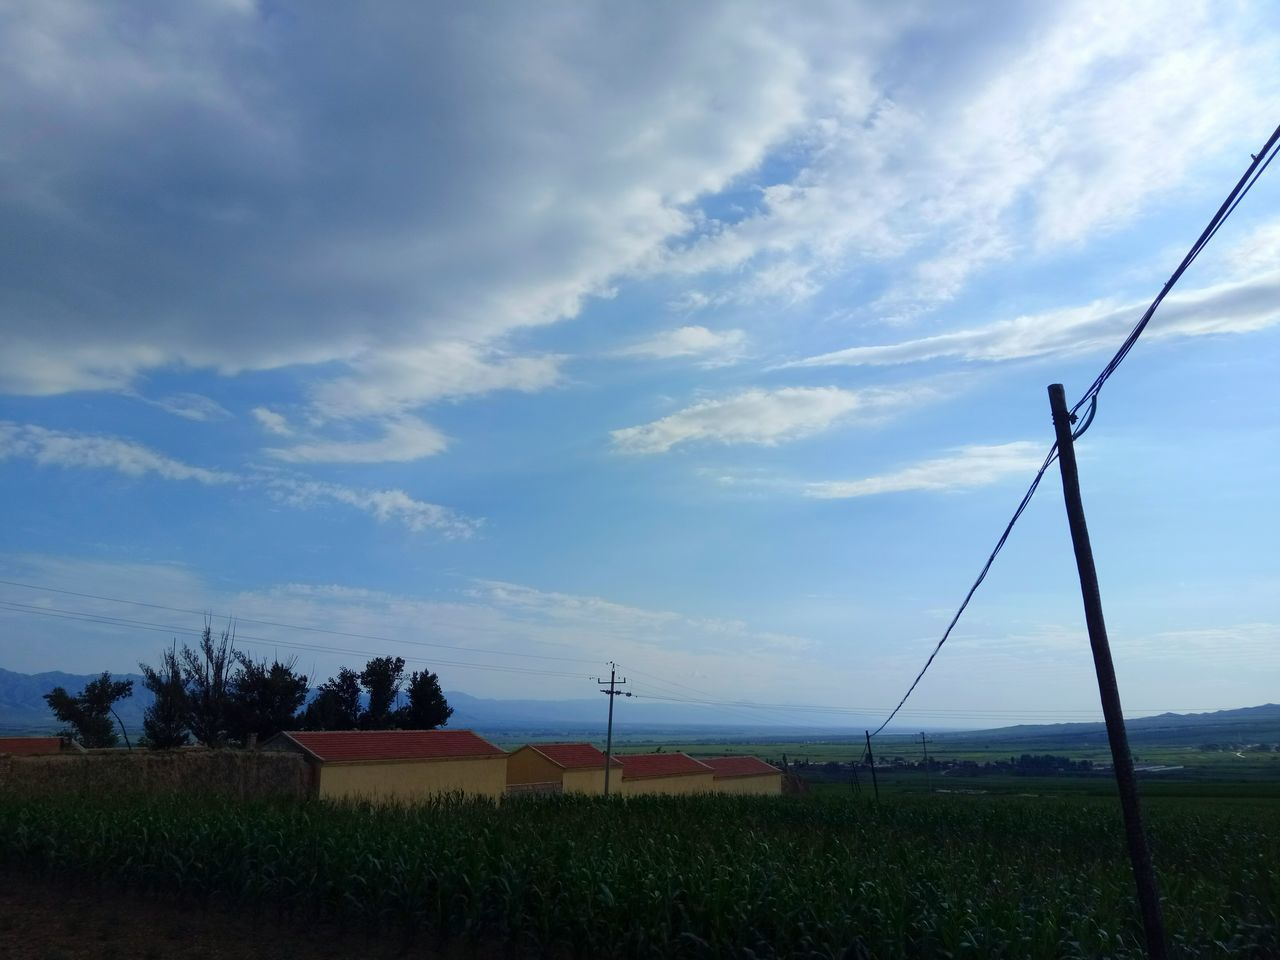 cloud - sky, sky, cable, day, no people, outdoors, nature, beauty in nature, scenics, grass, tree, telephone line